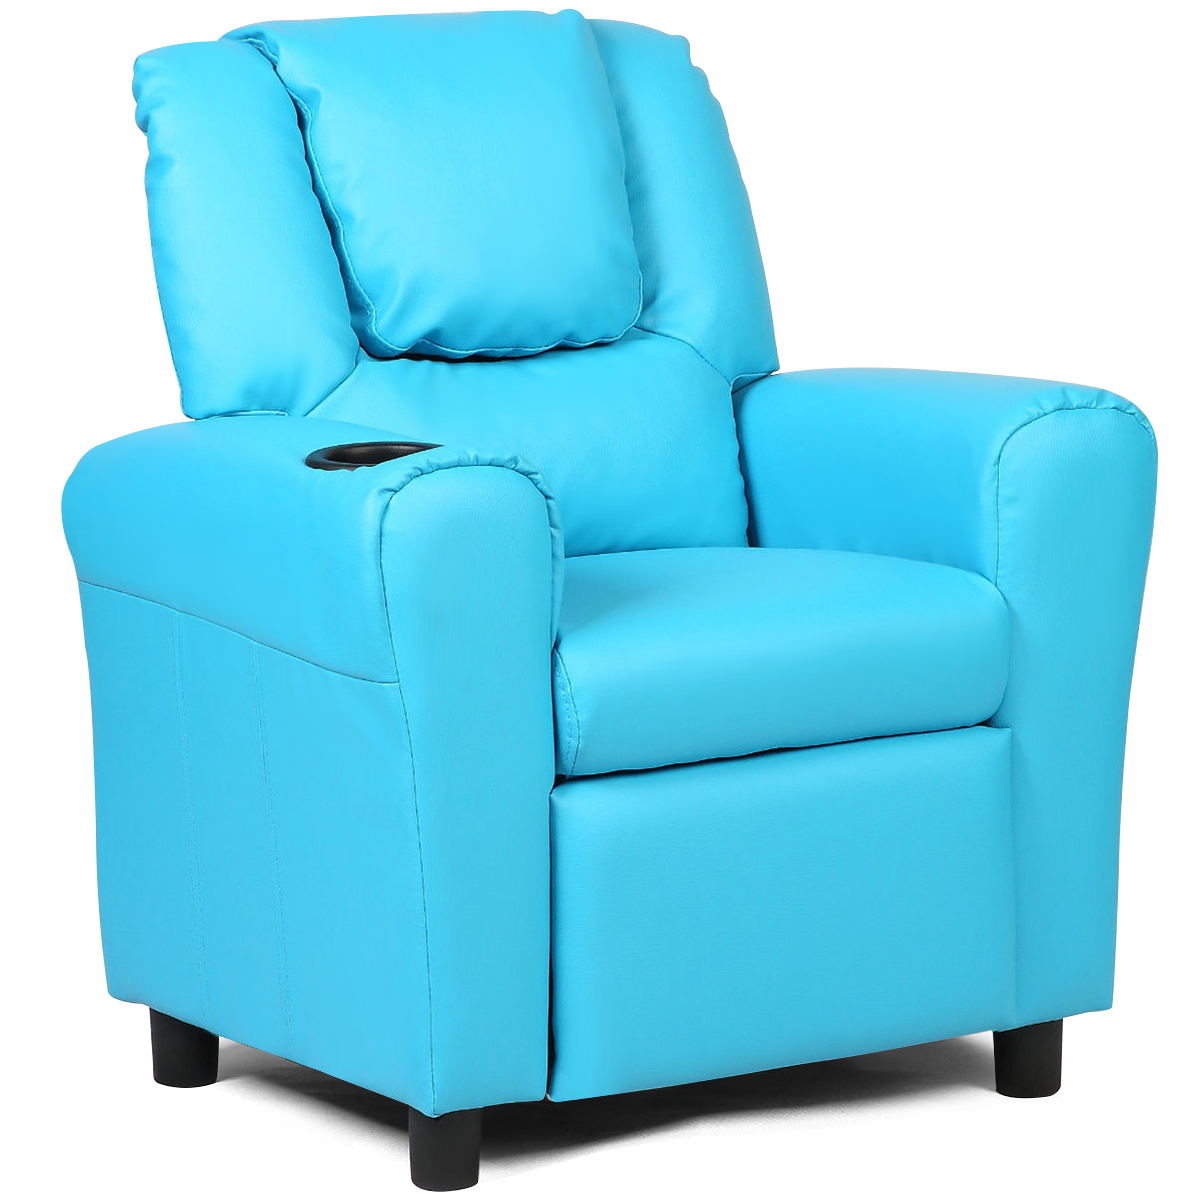 Costway Kids Recliner Armchair Children's Furniture Sofa Seat Couch Chair w/Cup Holder Blue